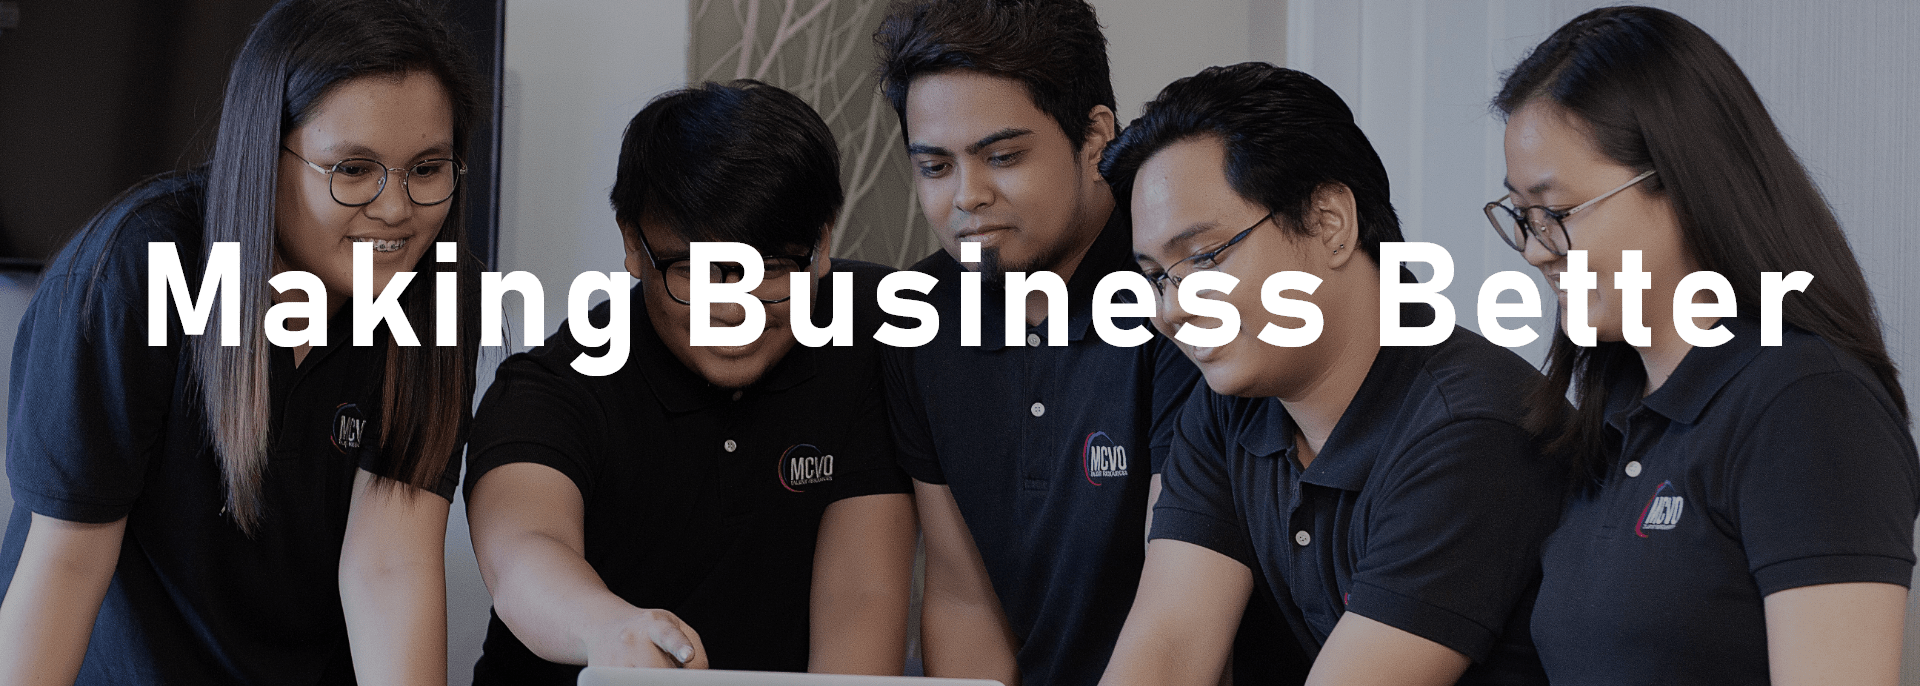 Making Business Better